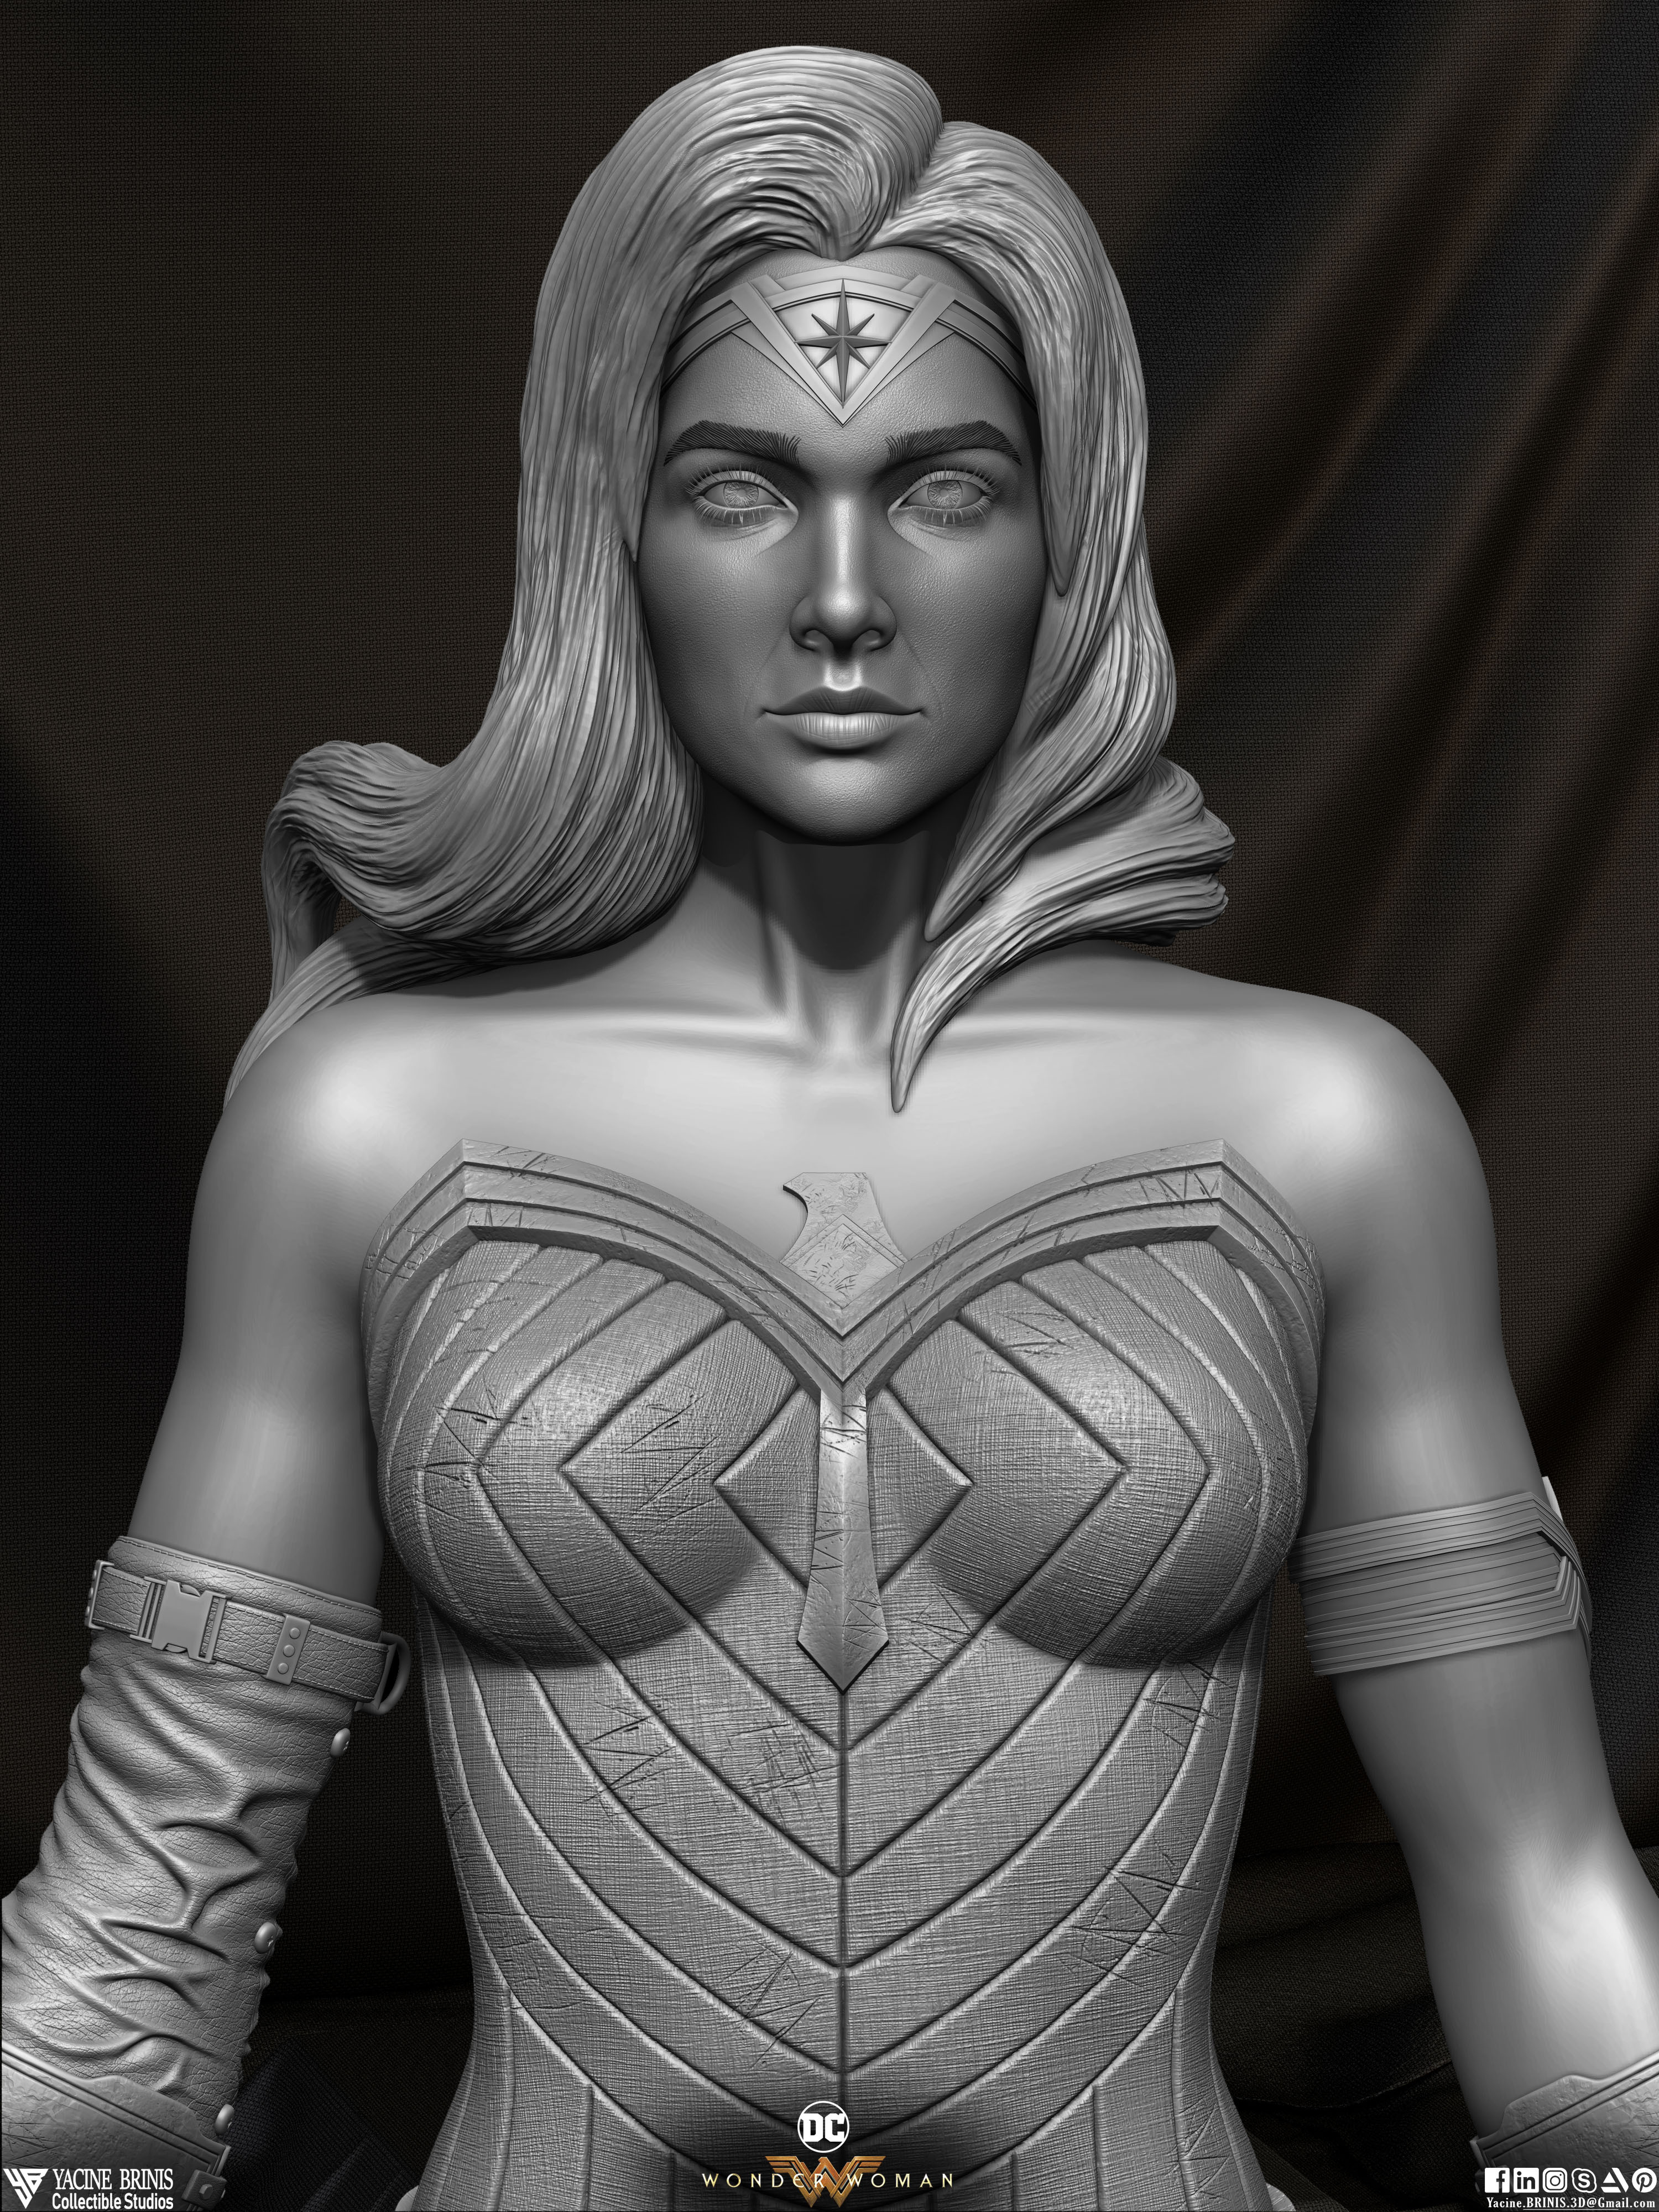 Wonder Woman ZBrush Version, Personal Project (Sculpted By Yacine BRINIS) Set 04